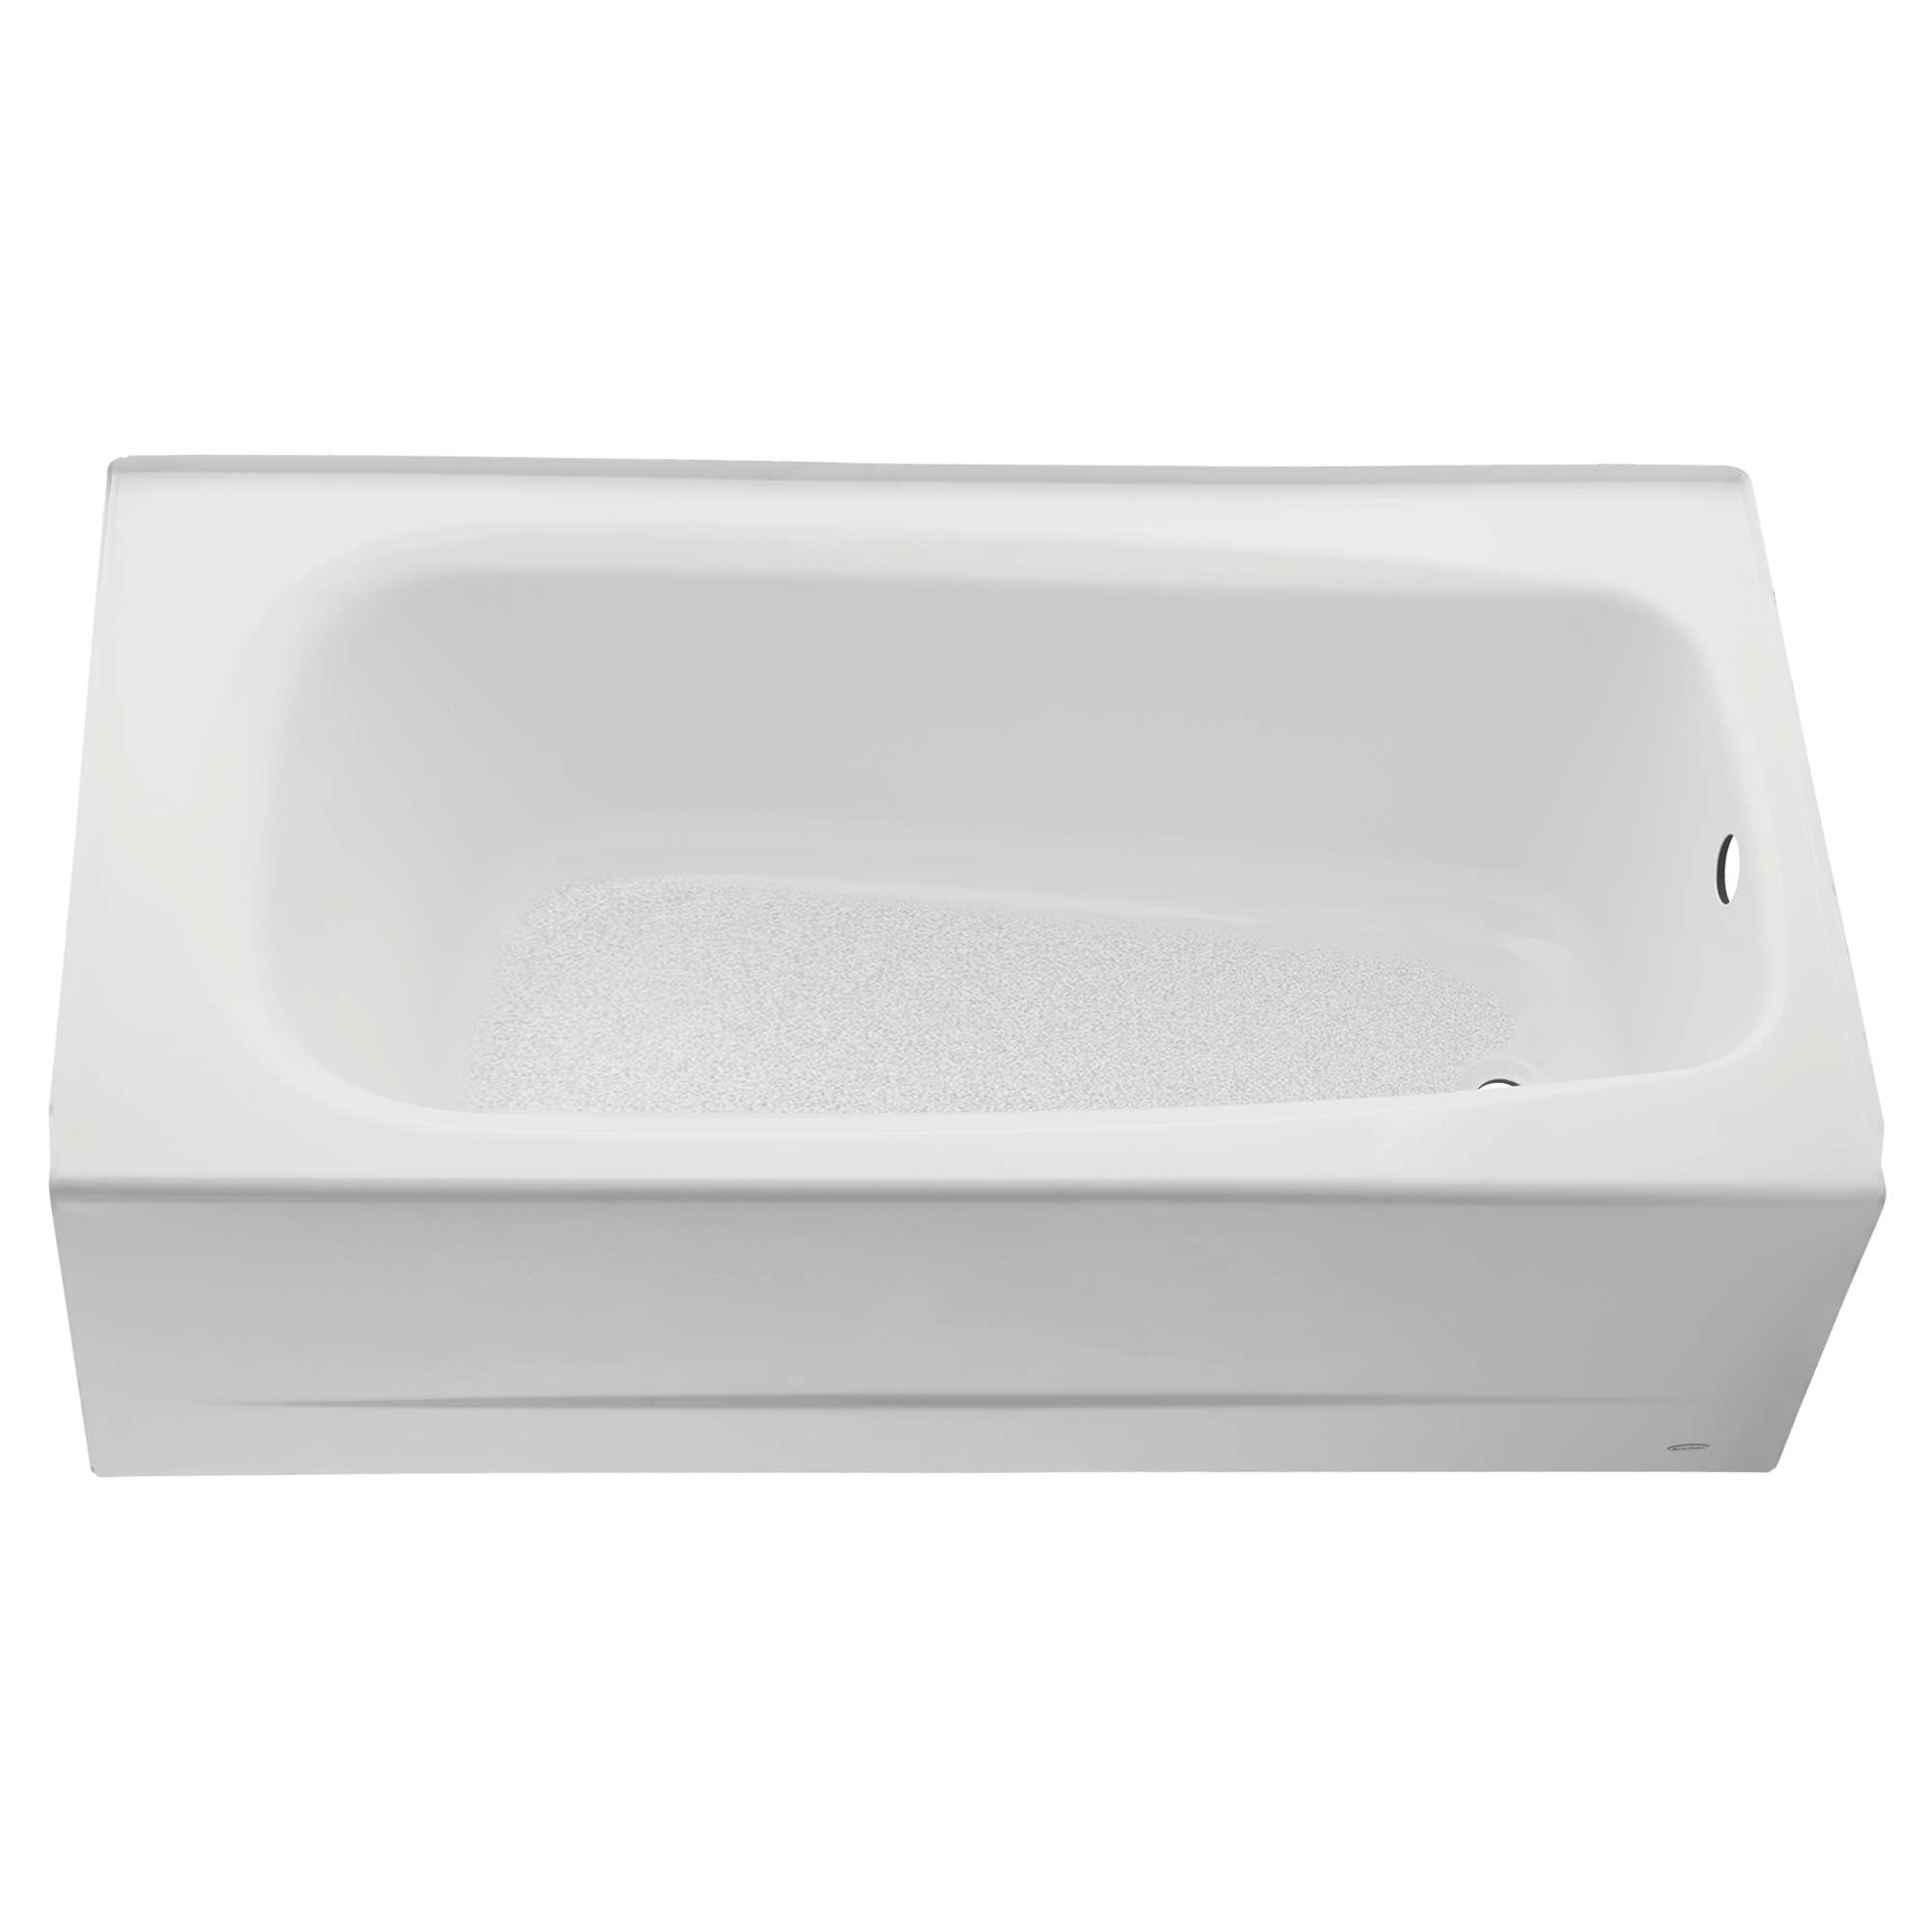 clipart library Cambridge x inch integral. Transparent bathtub small plastic